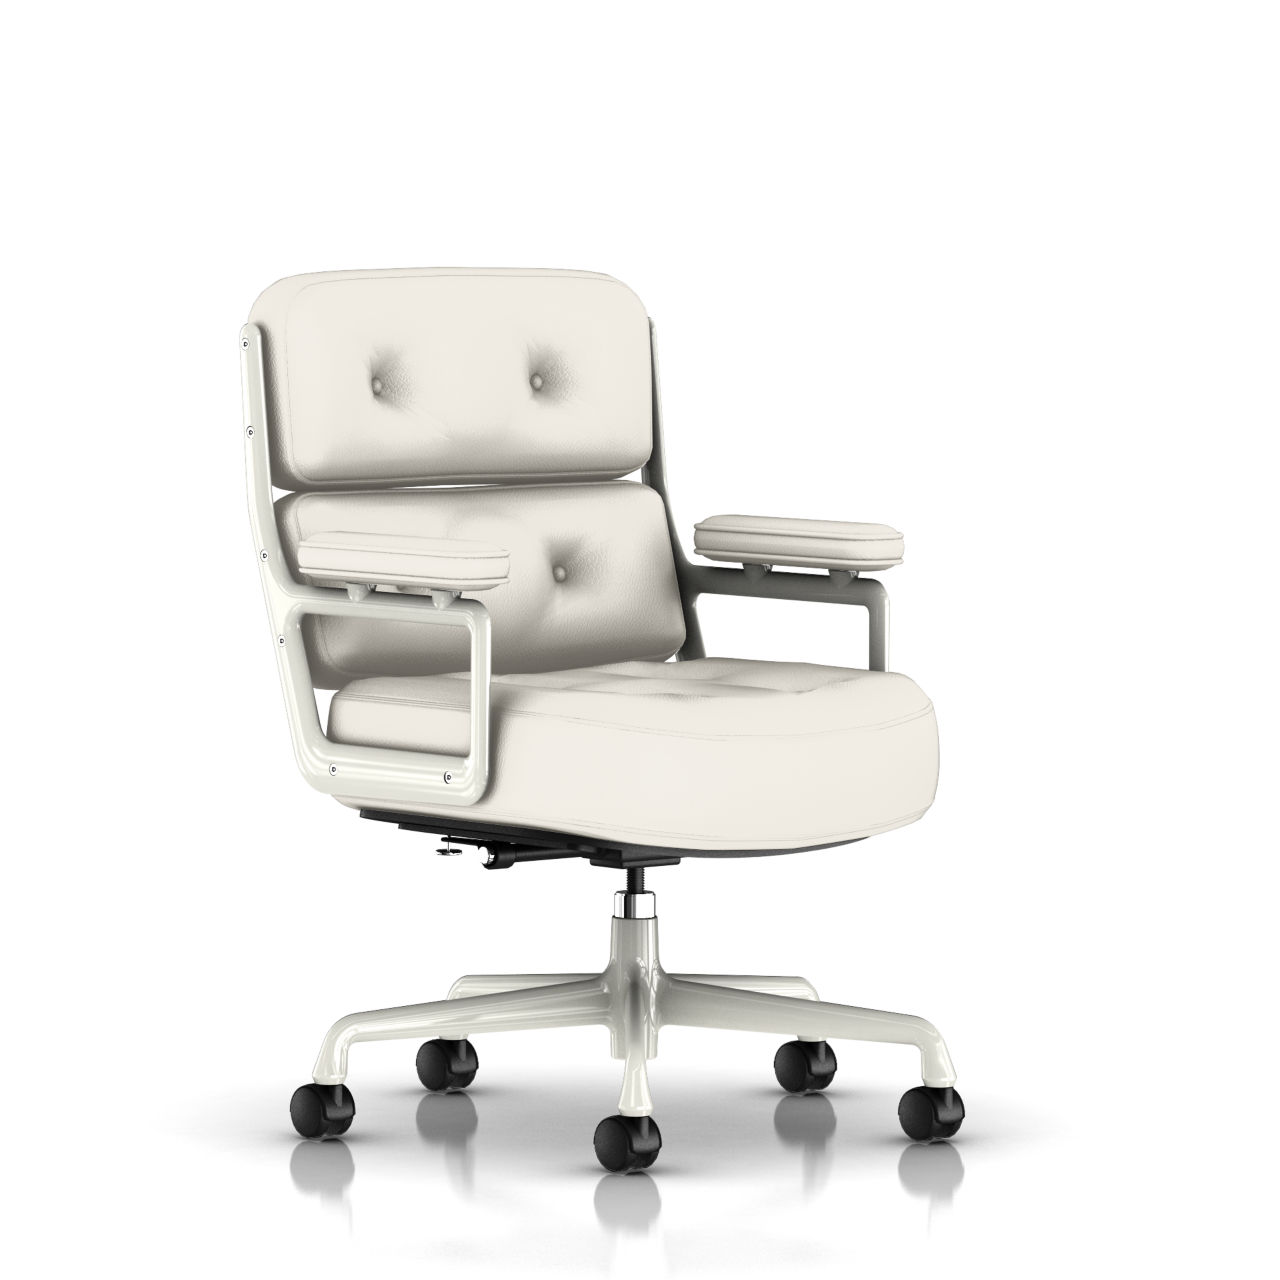 Eames Executive Work Chair in Alpine Leather by Herman Miller